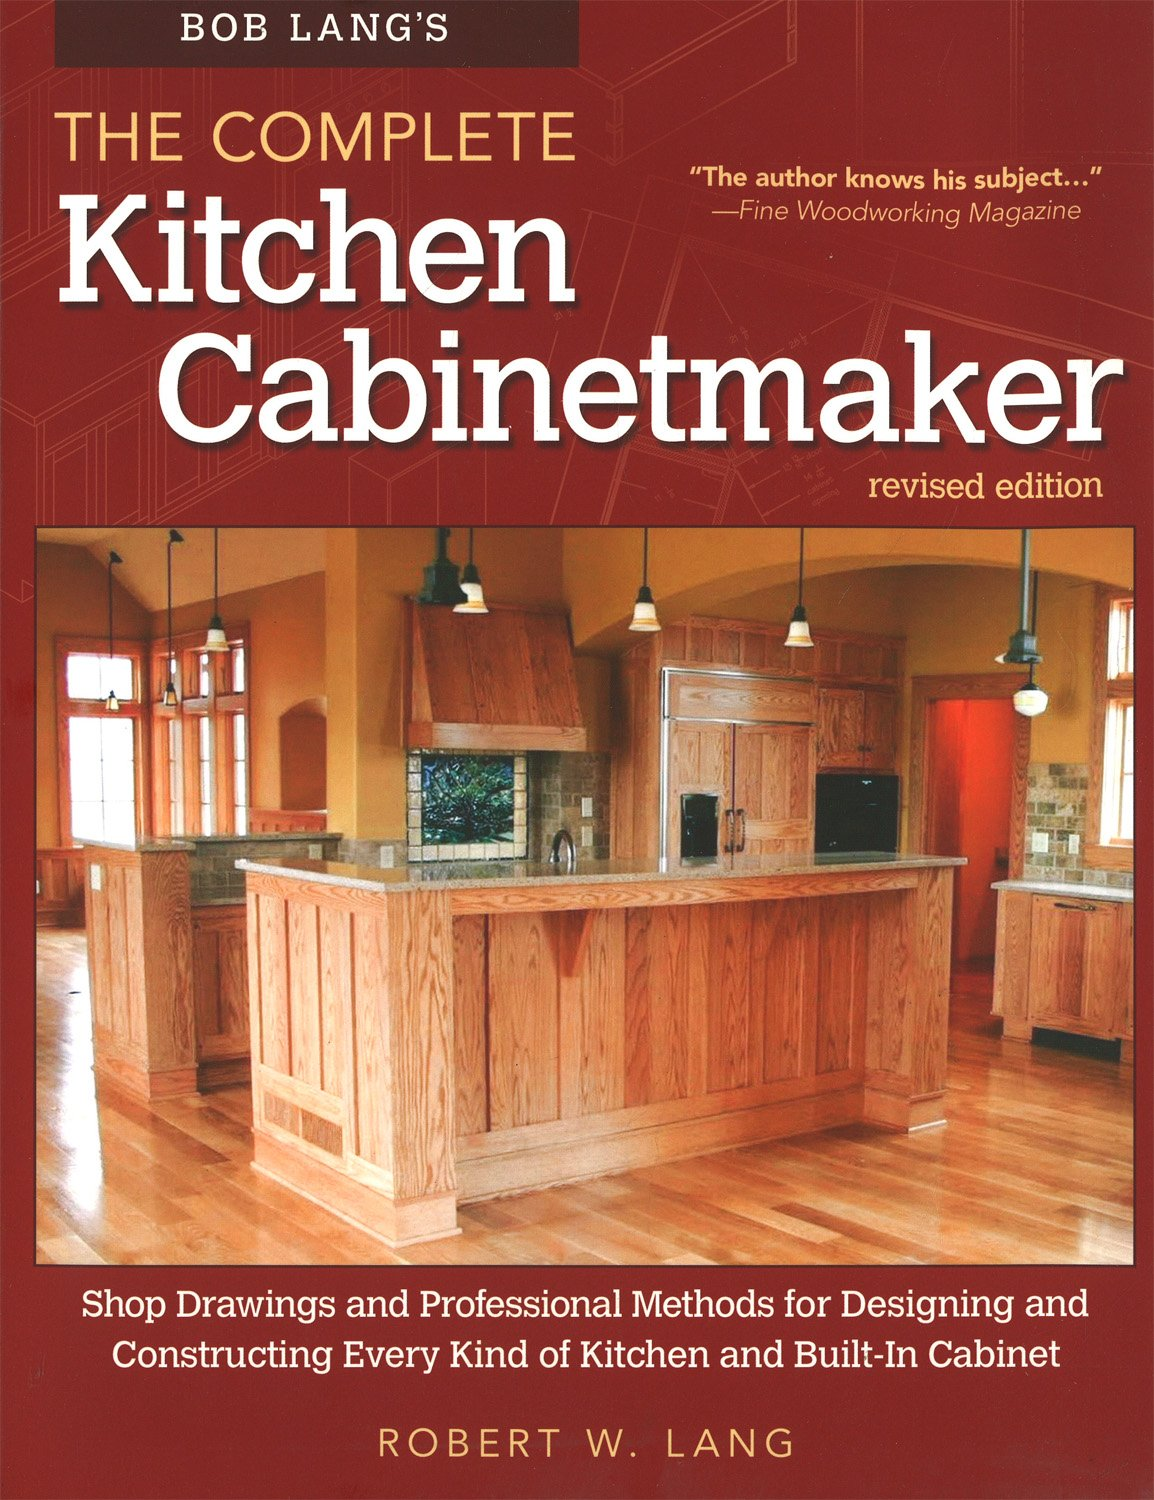 Bob Langu0027s The Complete Kitchen Cabinetmaker, Revised Edition: Shop  Drawings And Professional Methods For Designing And Constructing Every Kind  Of Kitchen ...